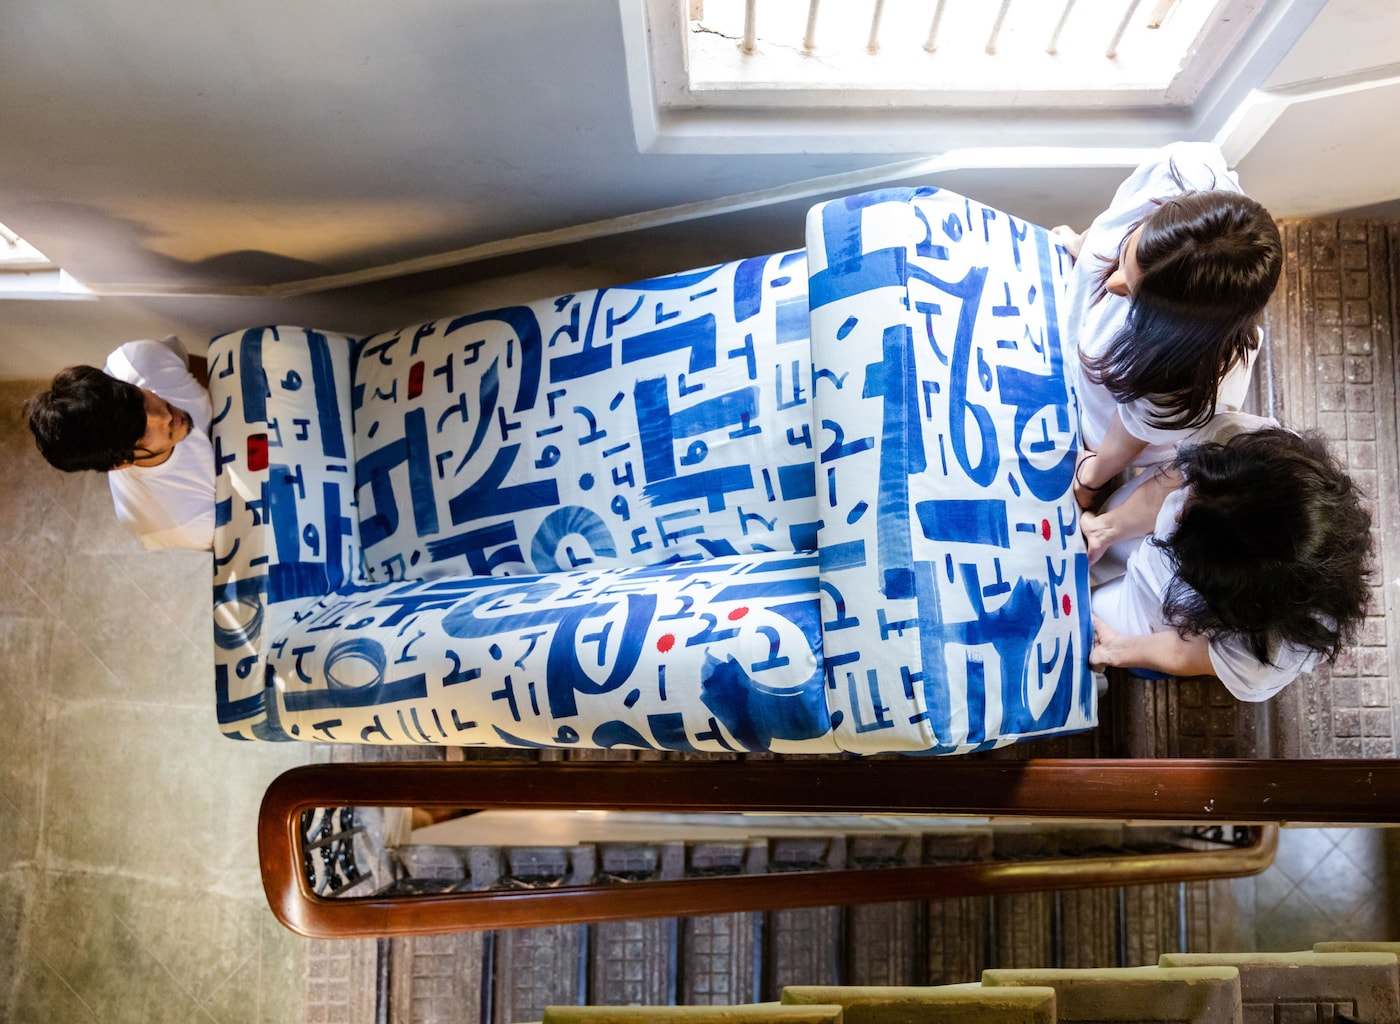 Three people with dark hair carrying a blue and white KLIPPAN sofa up the stairs.